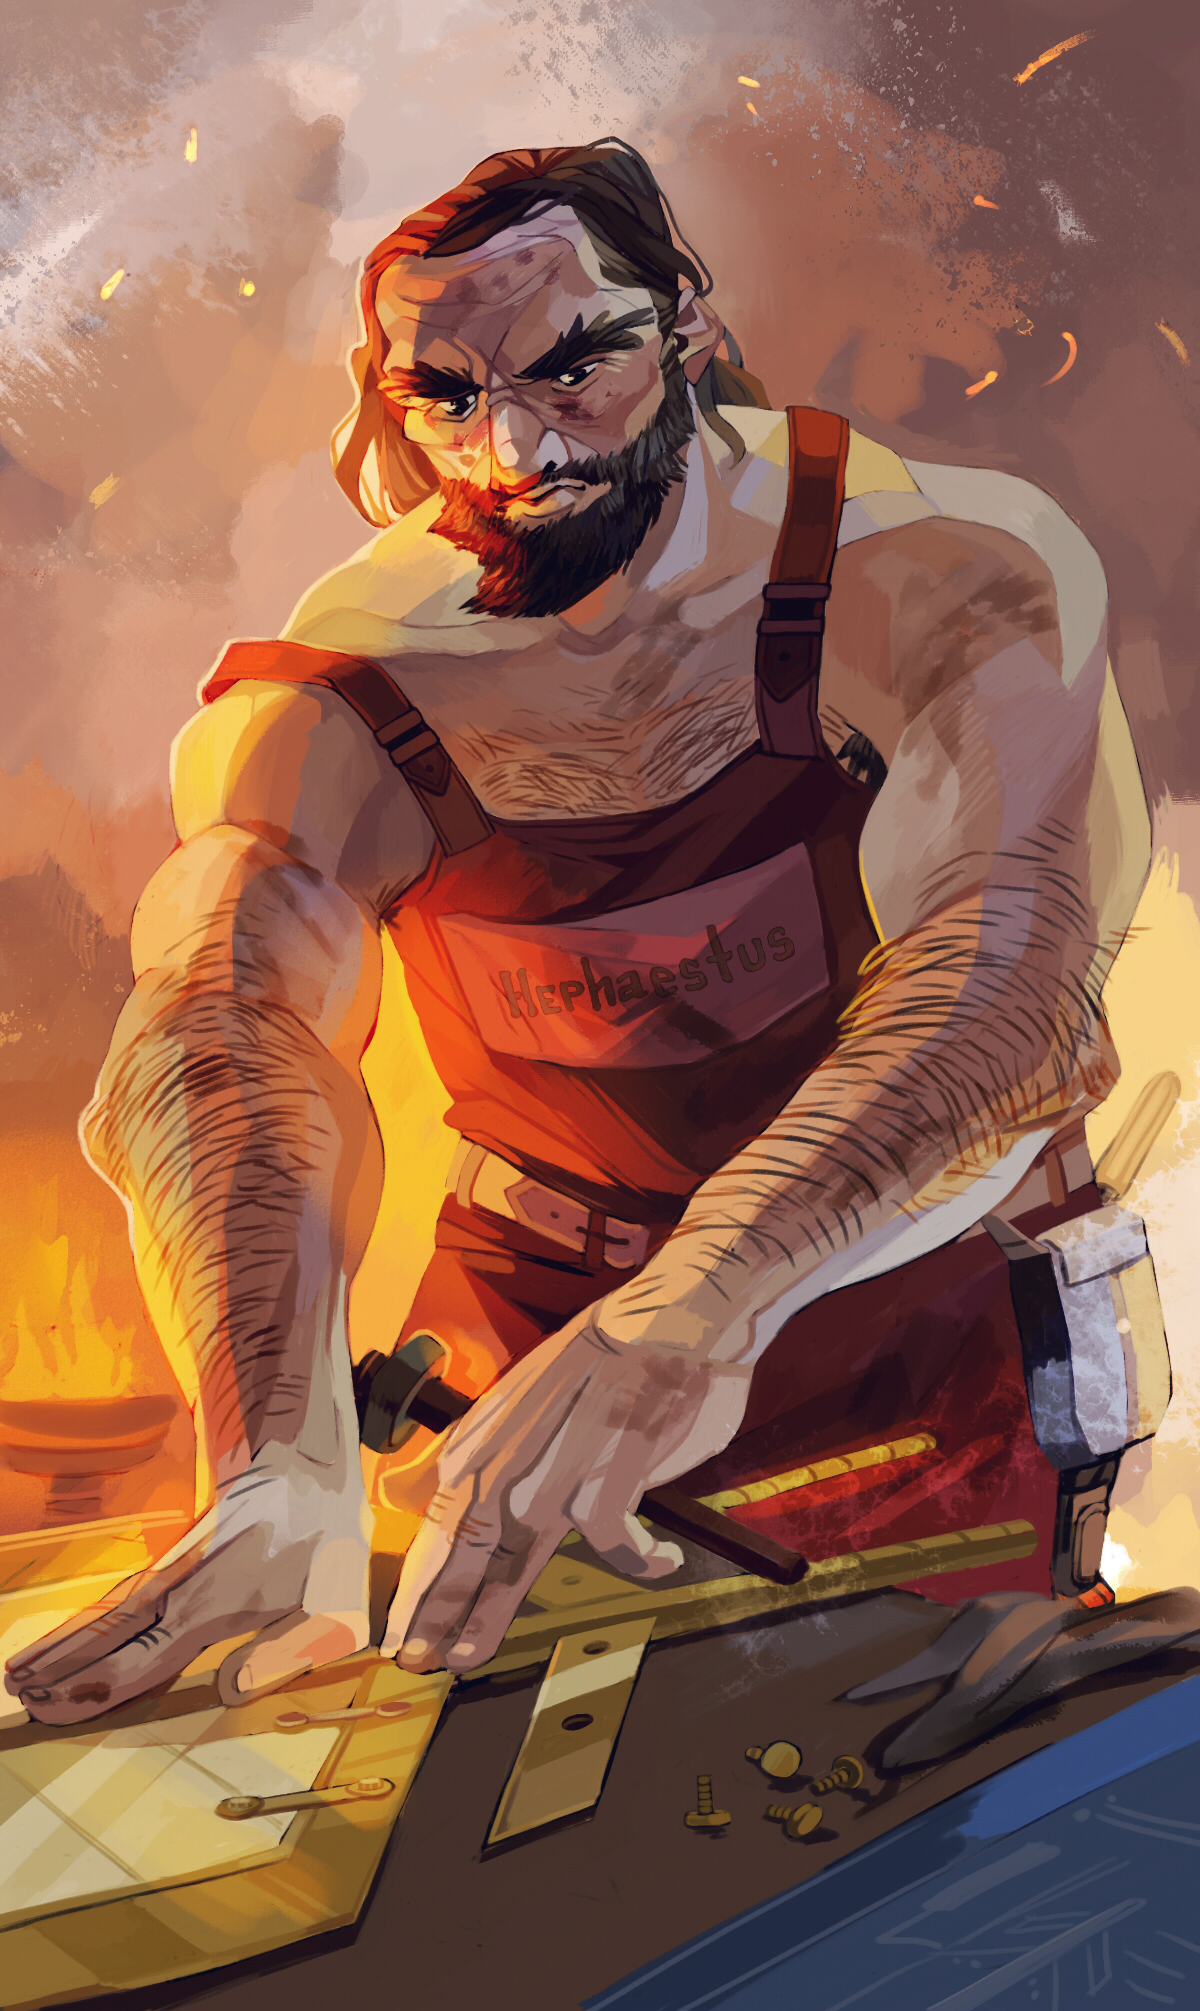 Hephaestus | Riordan Wiki | FANDOM powered by Wikia